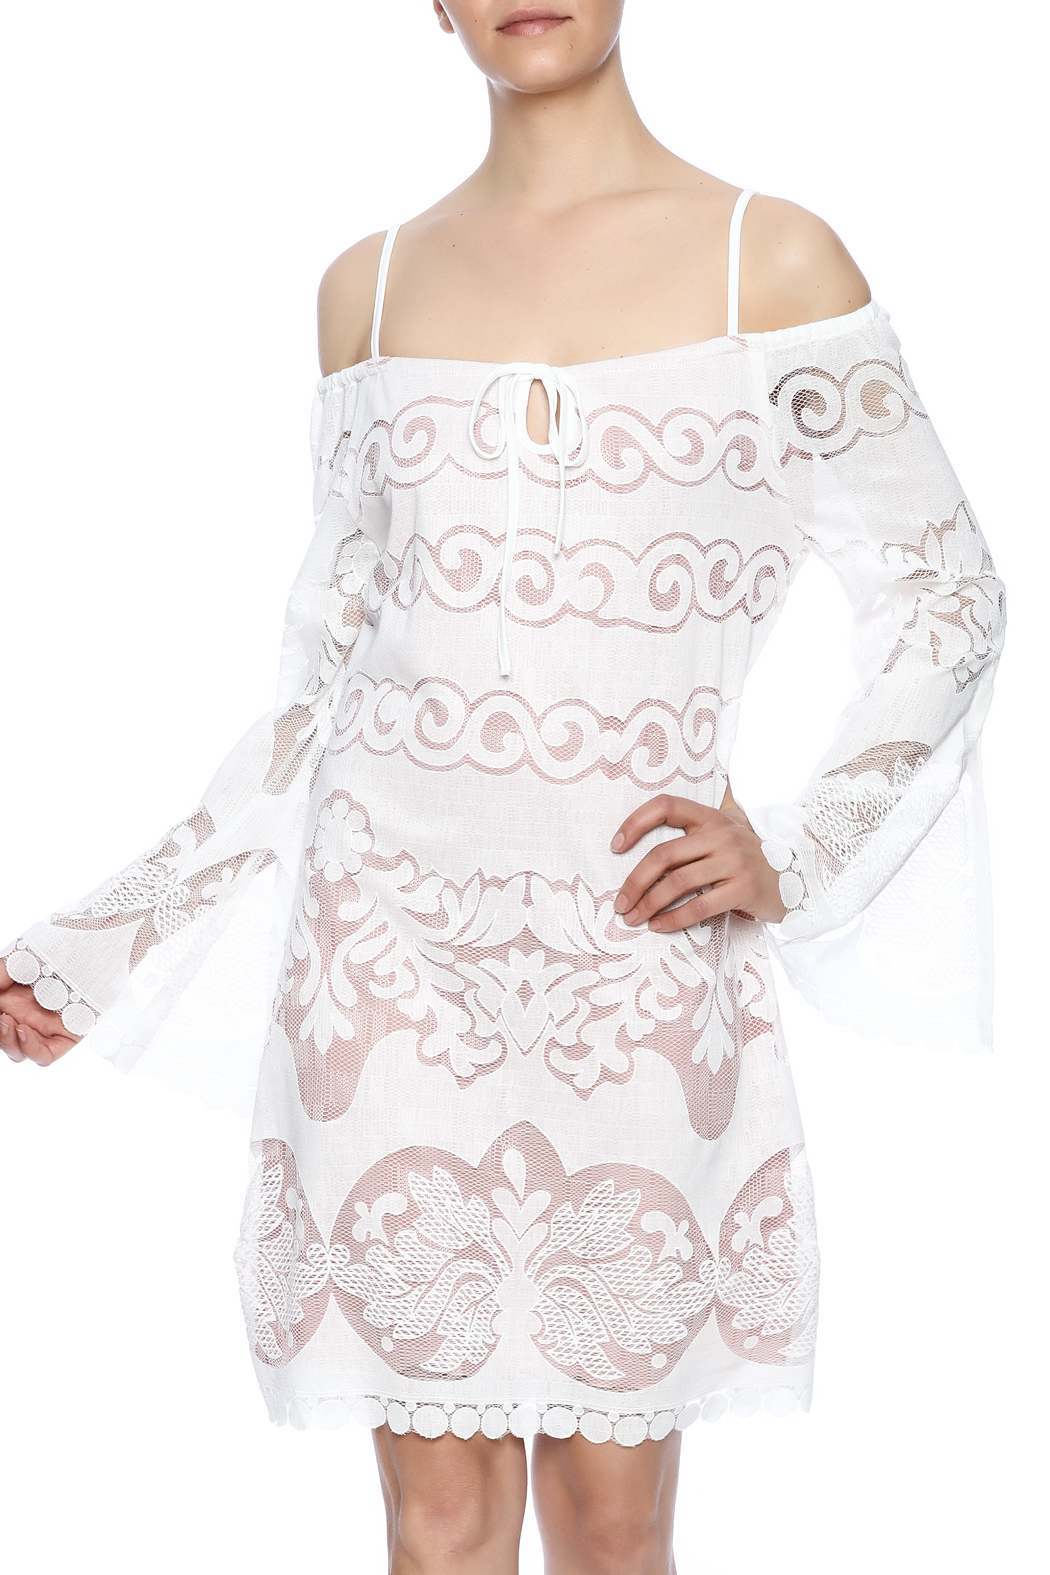 Union of Angels White Lace Dress - Main Image